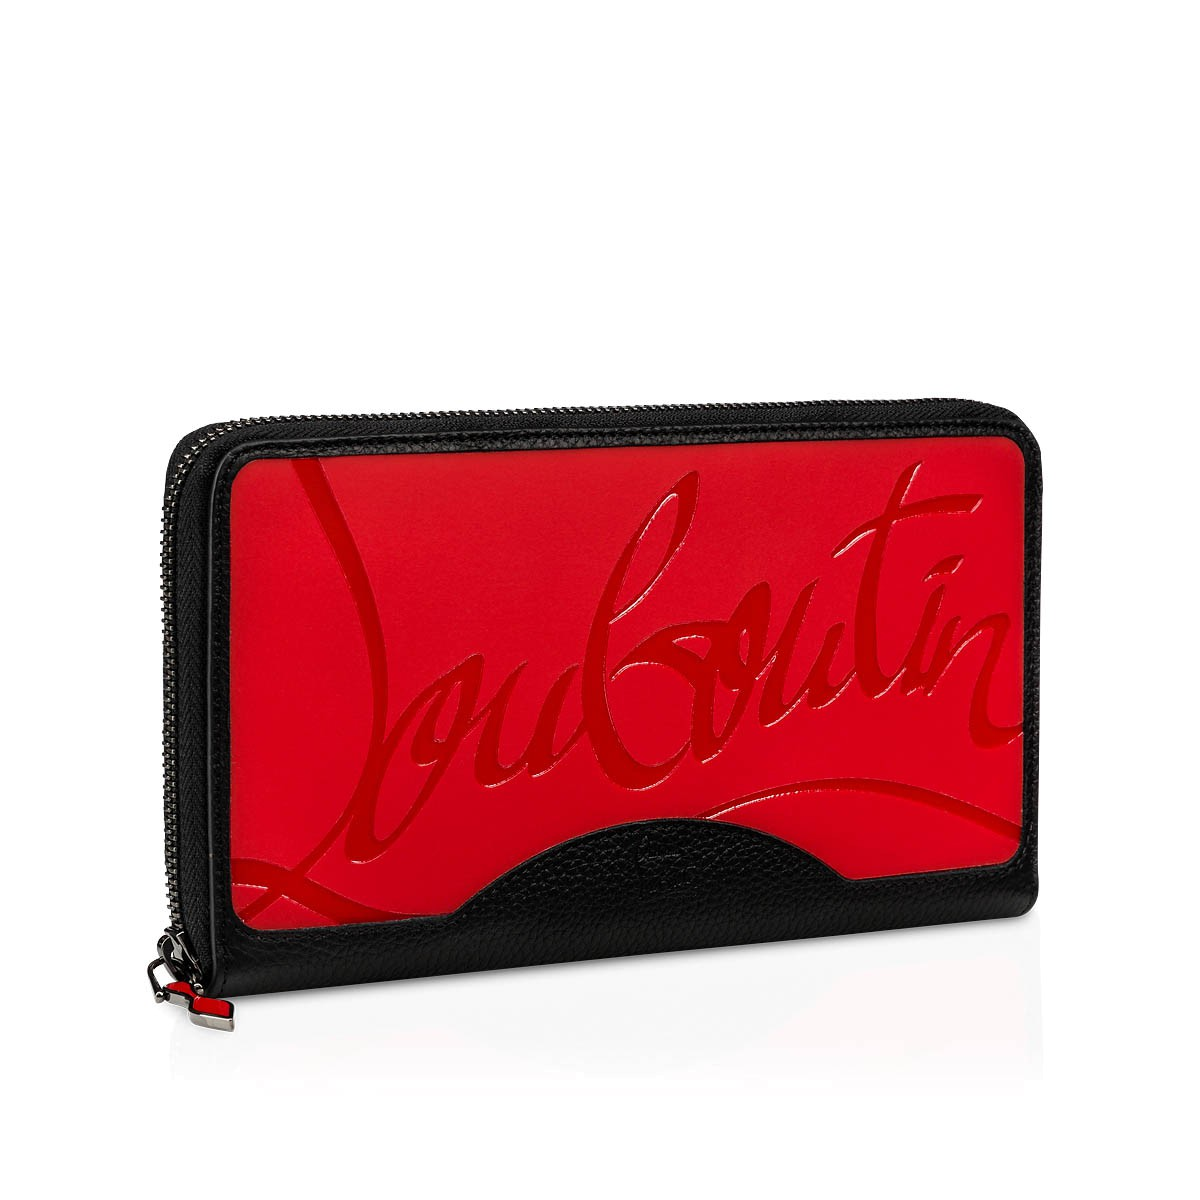 飾品 - W Traveloubi - Christian Louboutin